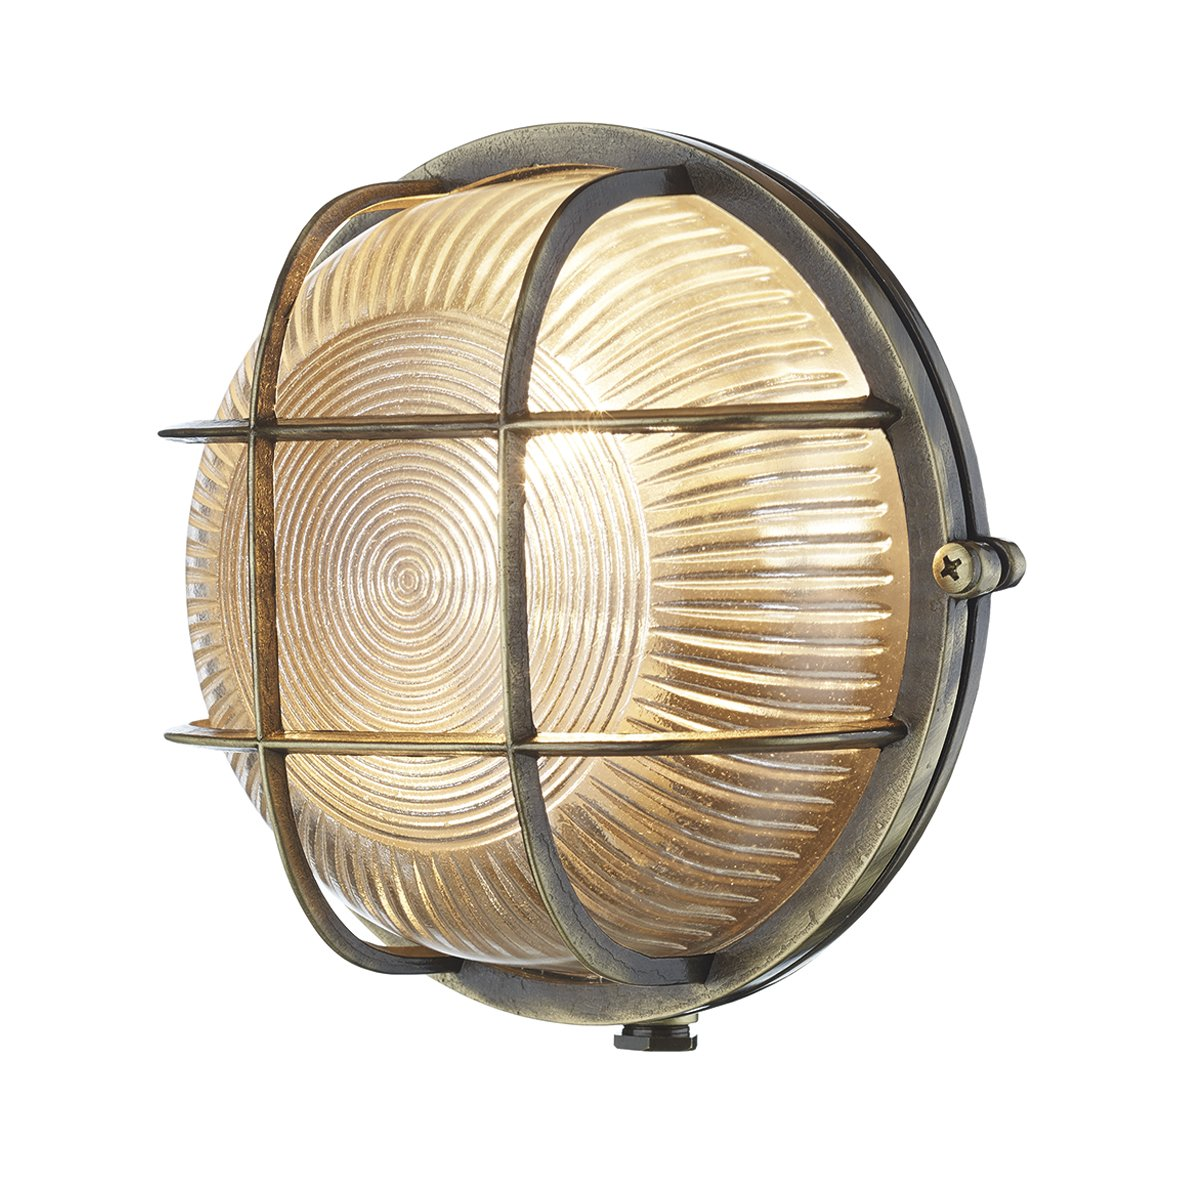 David Hunt Lighting ADM5075 Admiral 1 Light Round Wall Light Antique Brass